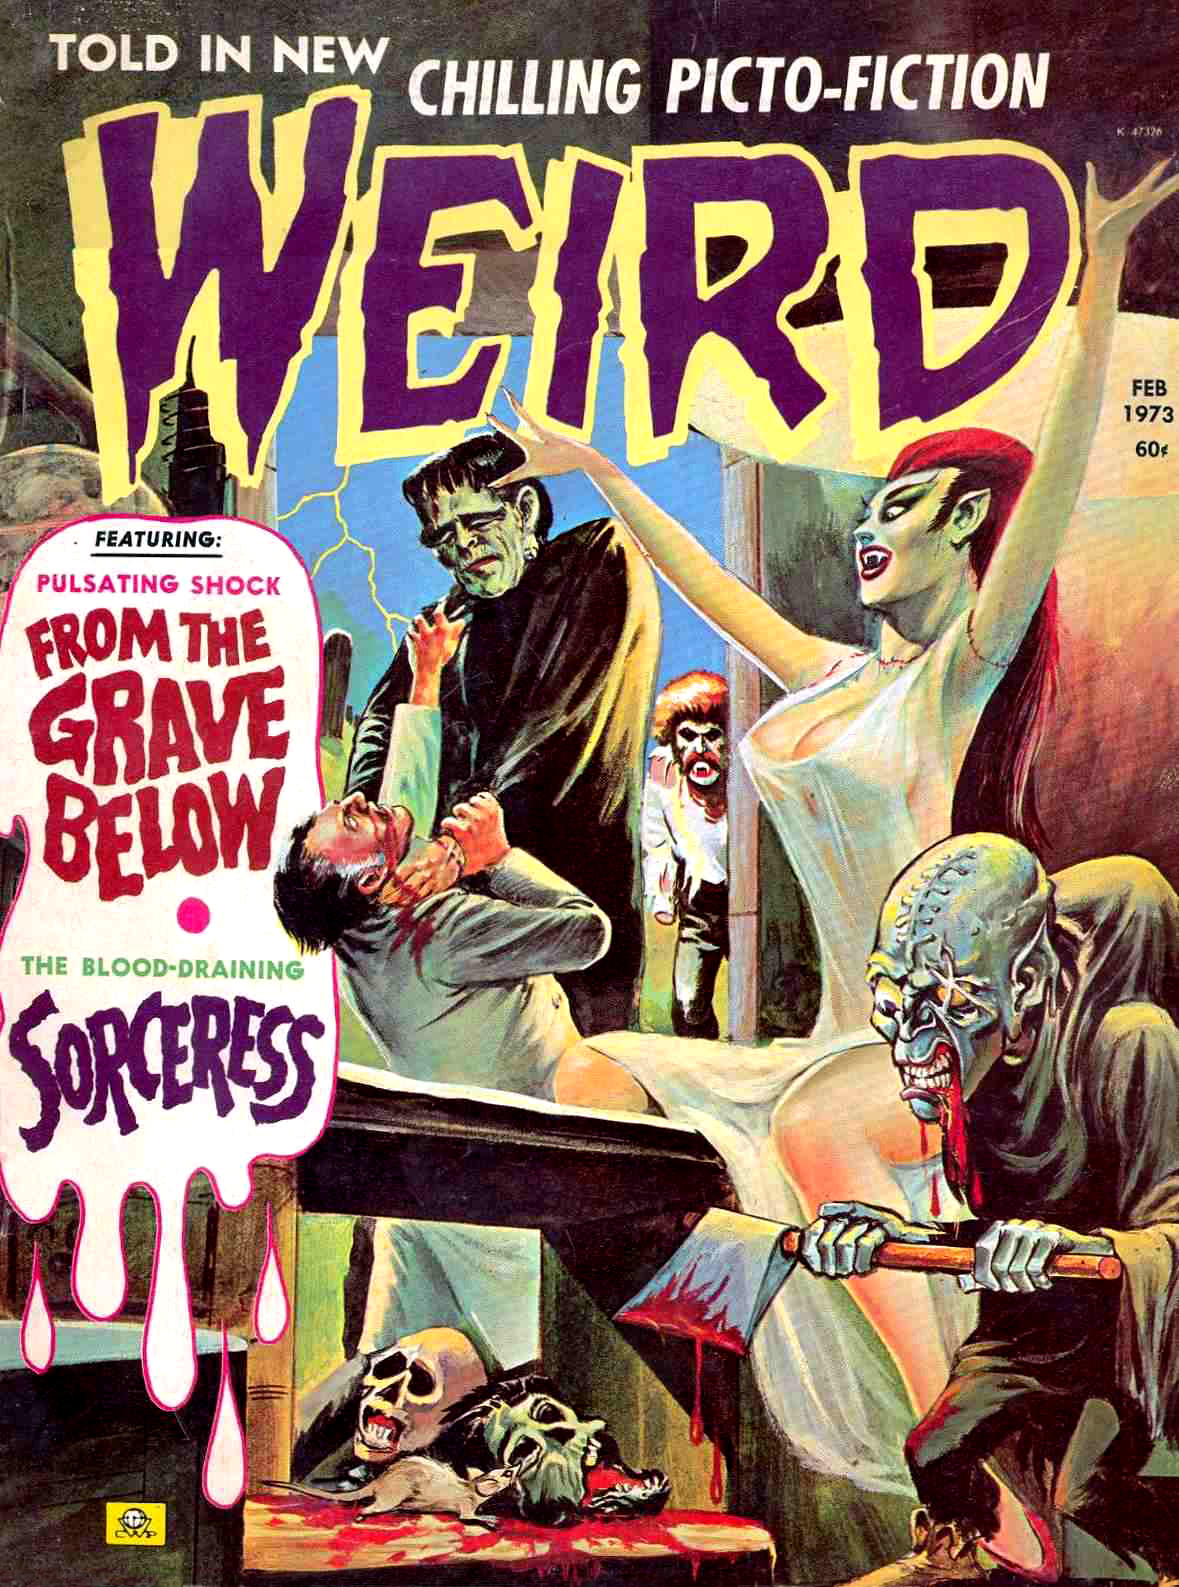 Weird Vol. 07 #1 (Eerie Publications, 1973)